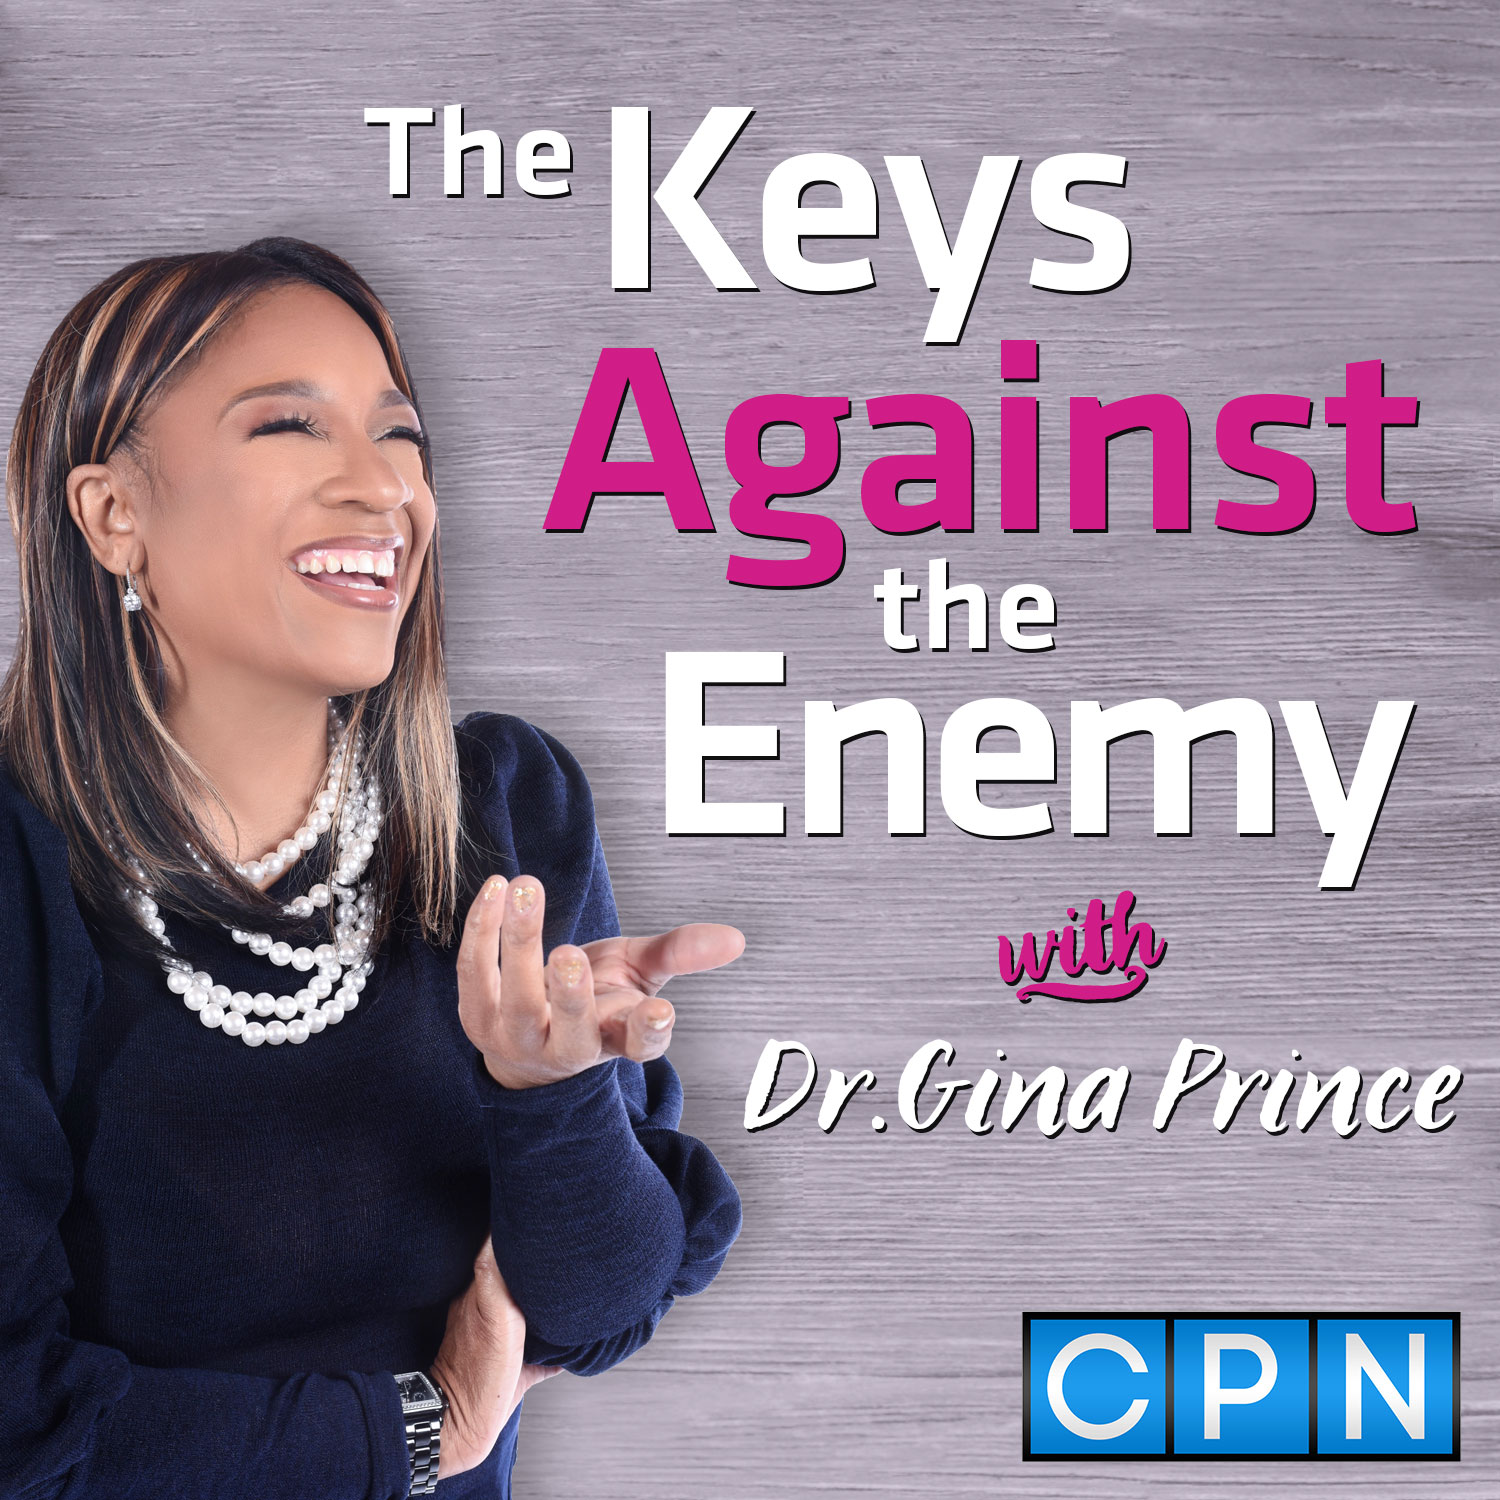 The Keys Against the Enemy